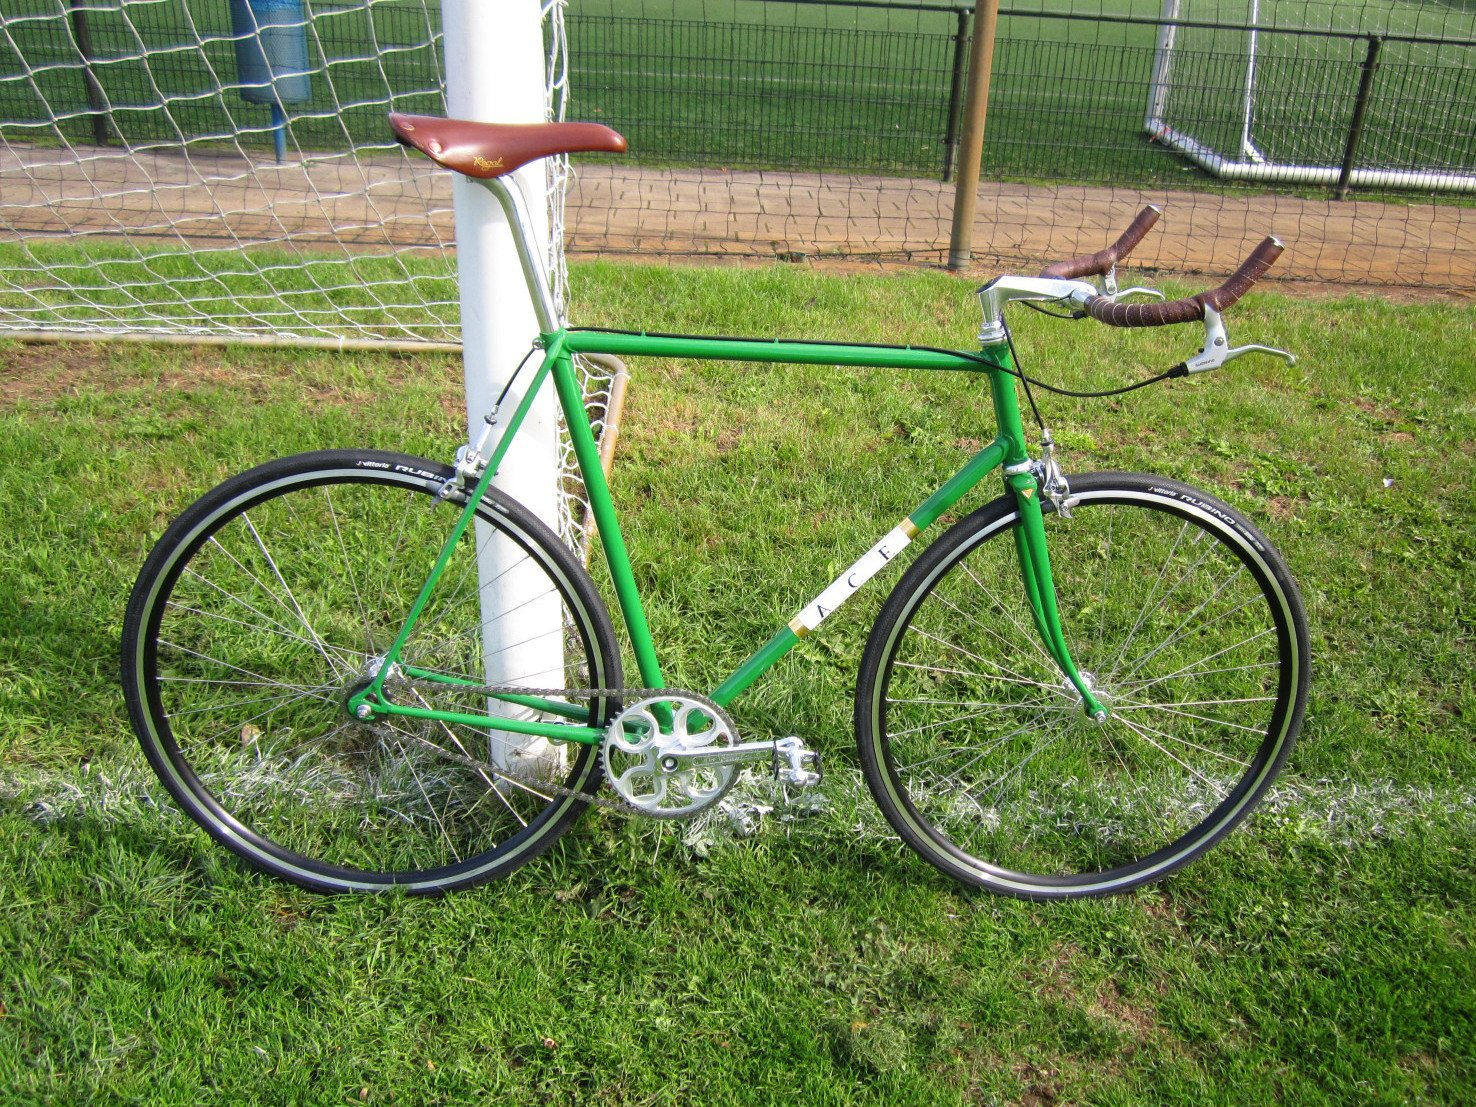 Customer Builds: Green Vintage Fixie